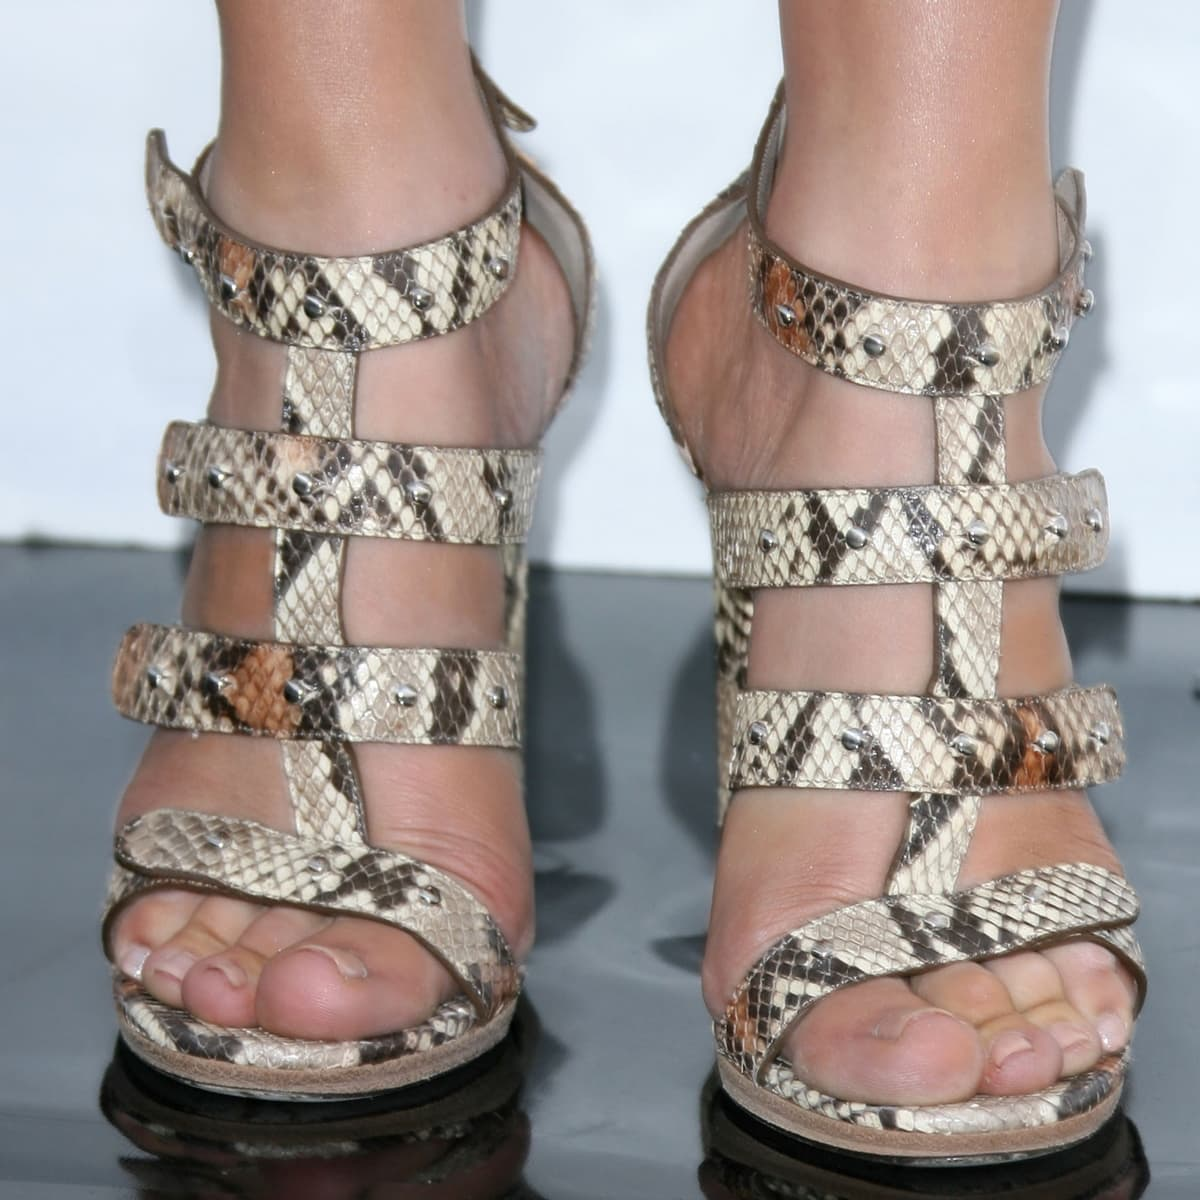 Jennifer Lopez shows off her feet in Gucci's Sigourney sandals